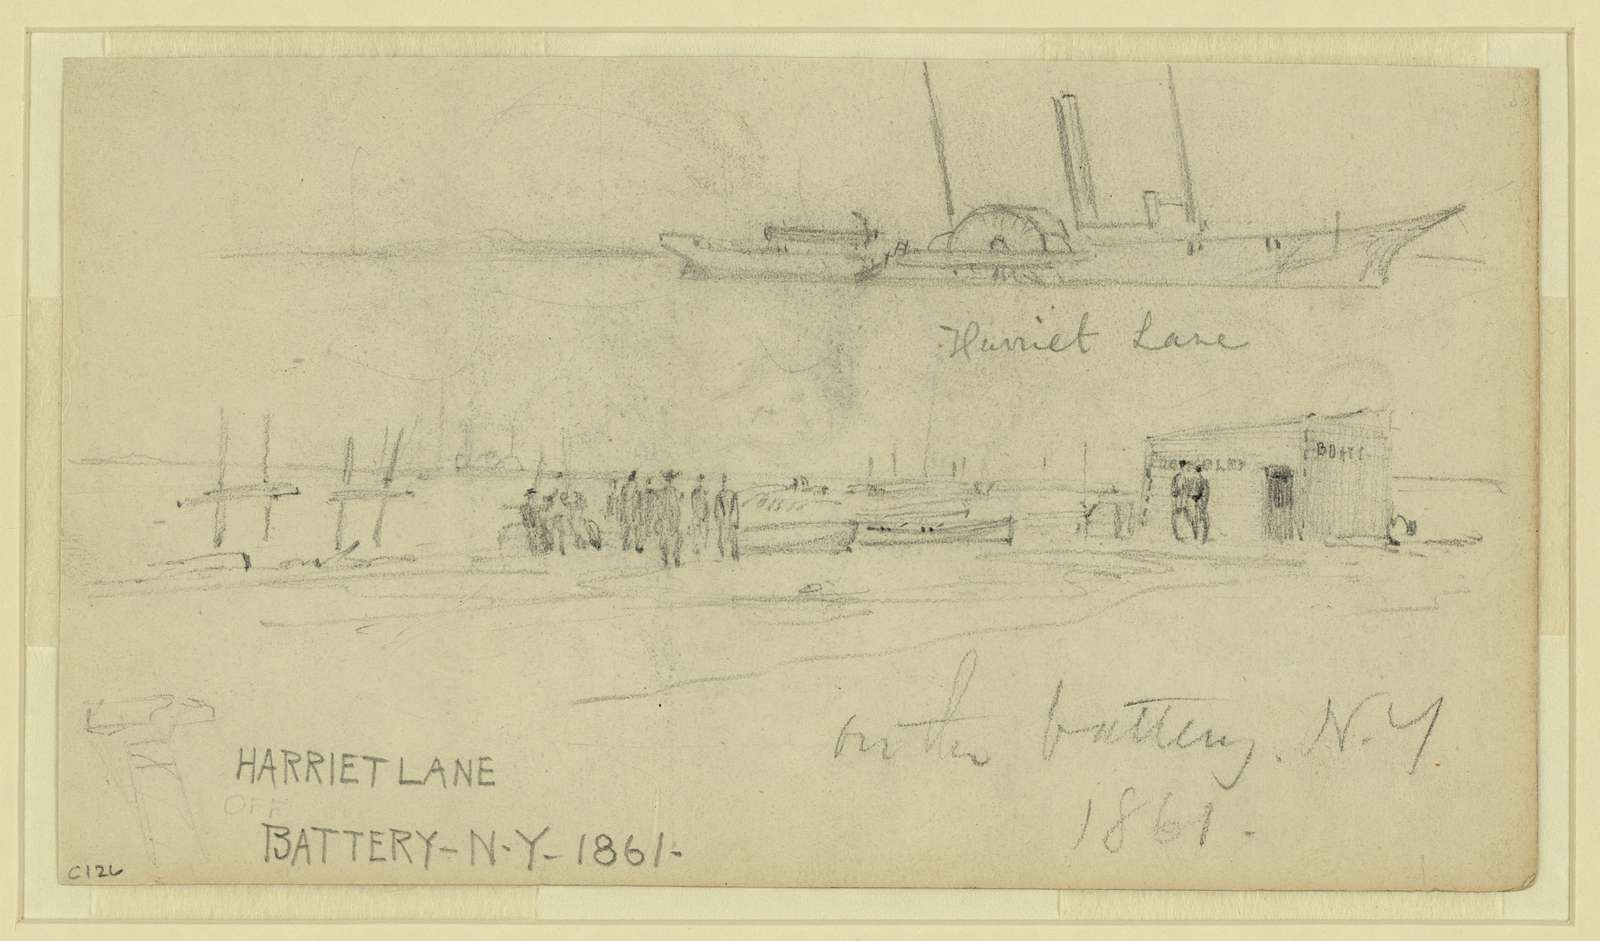 Harriet Lane [and] on the battery, N.Y., 1861